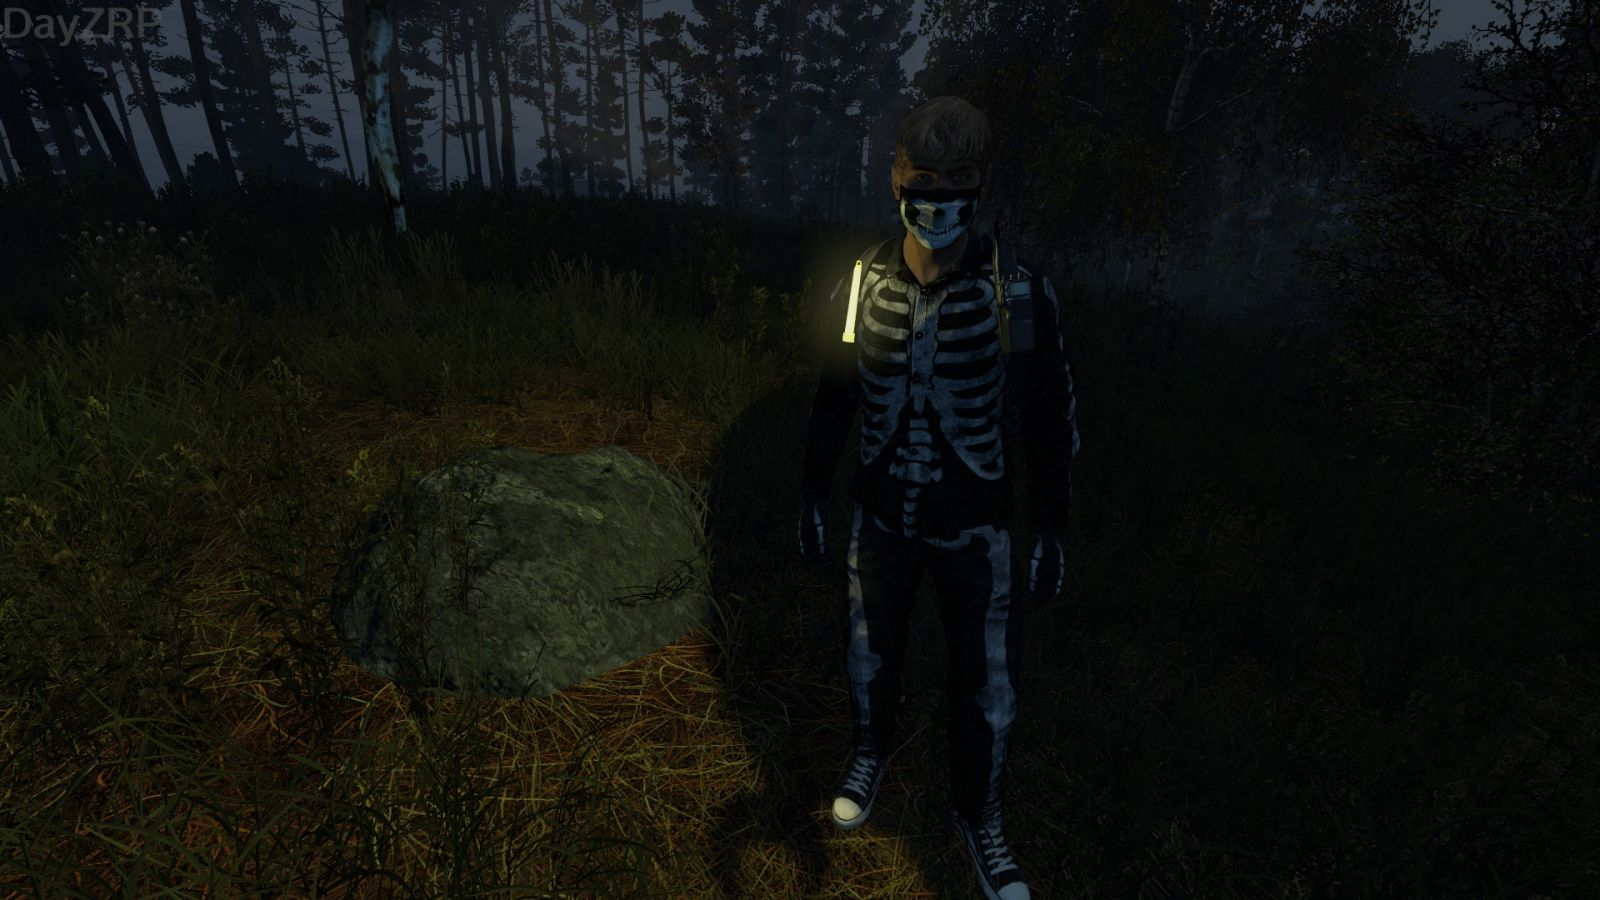 '' Something spooky in the night ''